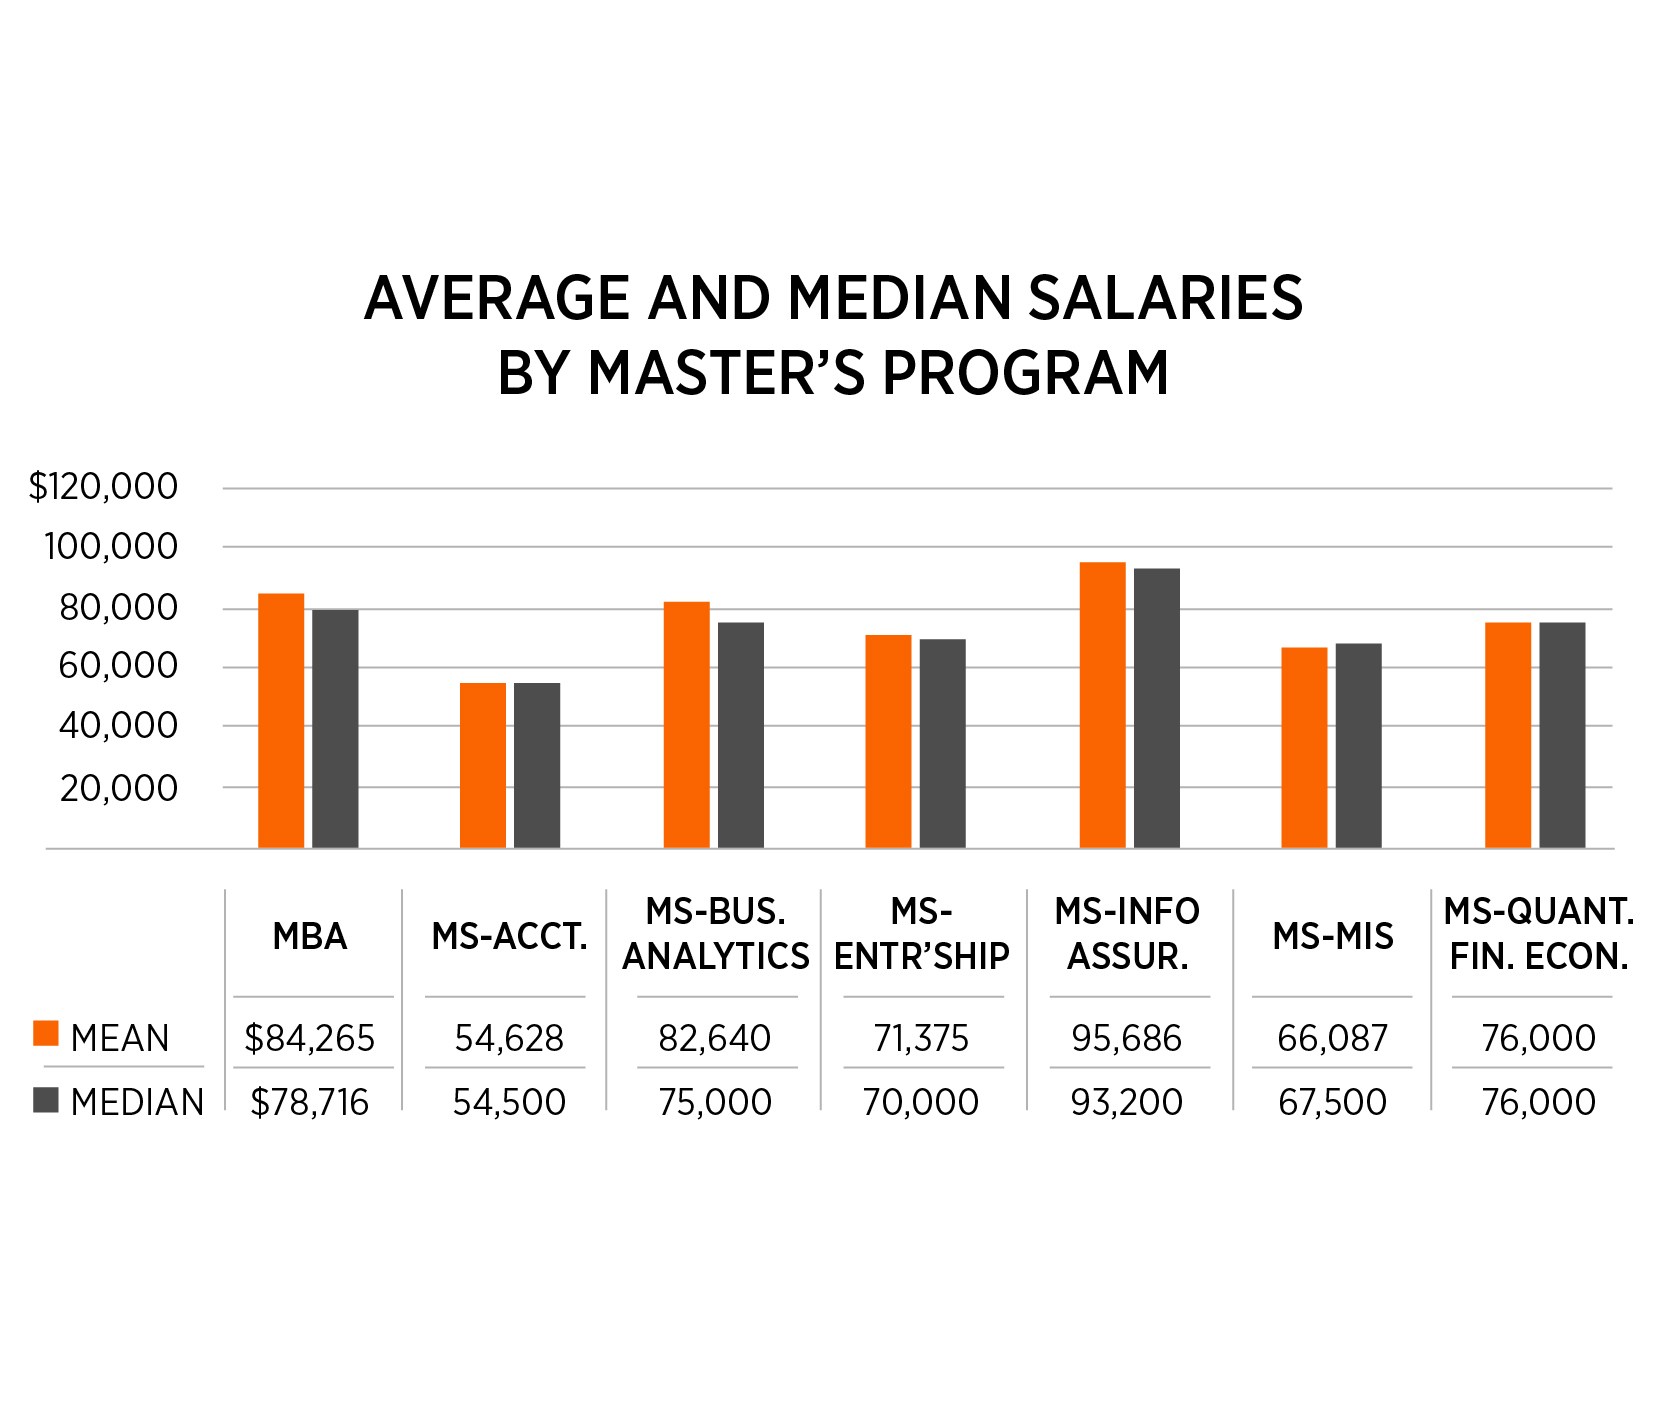 Chart detailing the average and median salaries by masters programs.